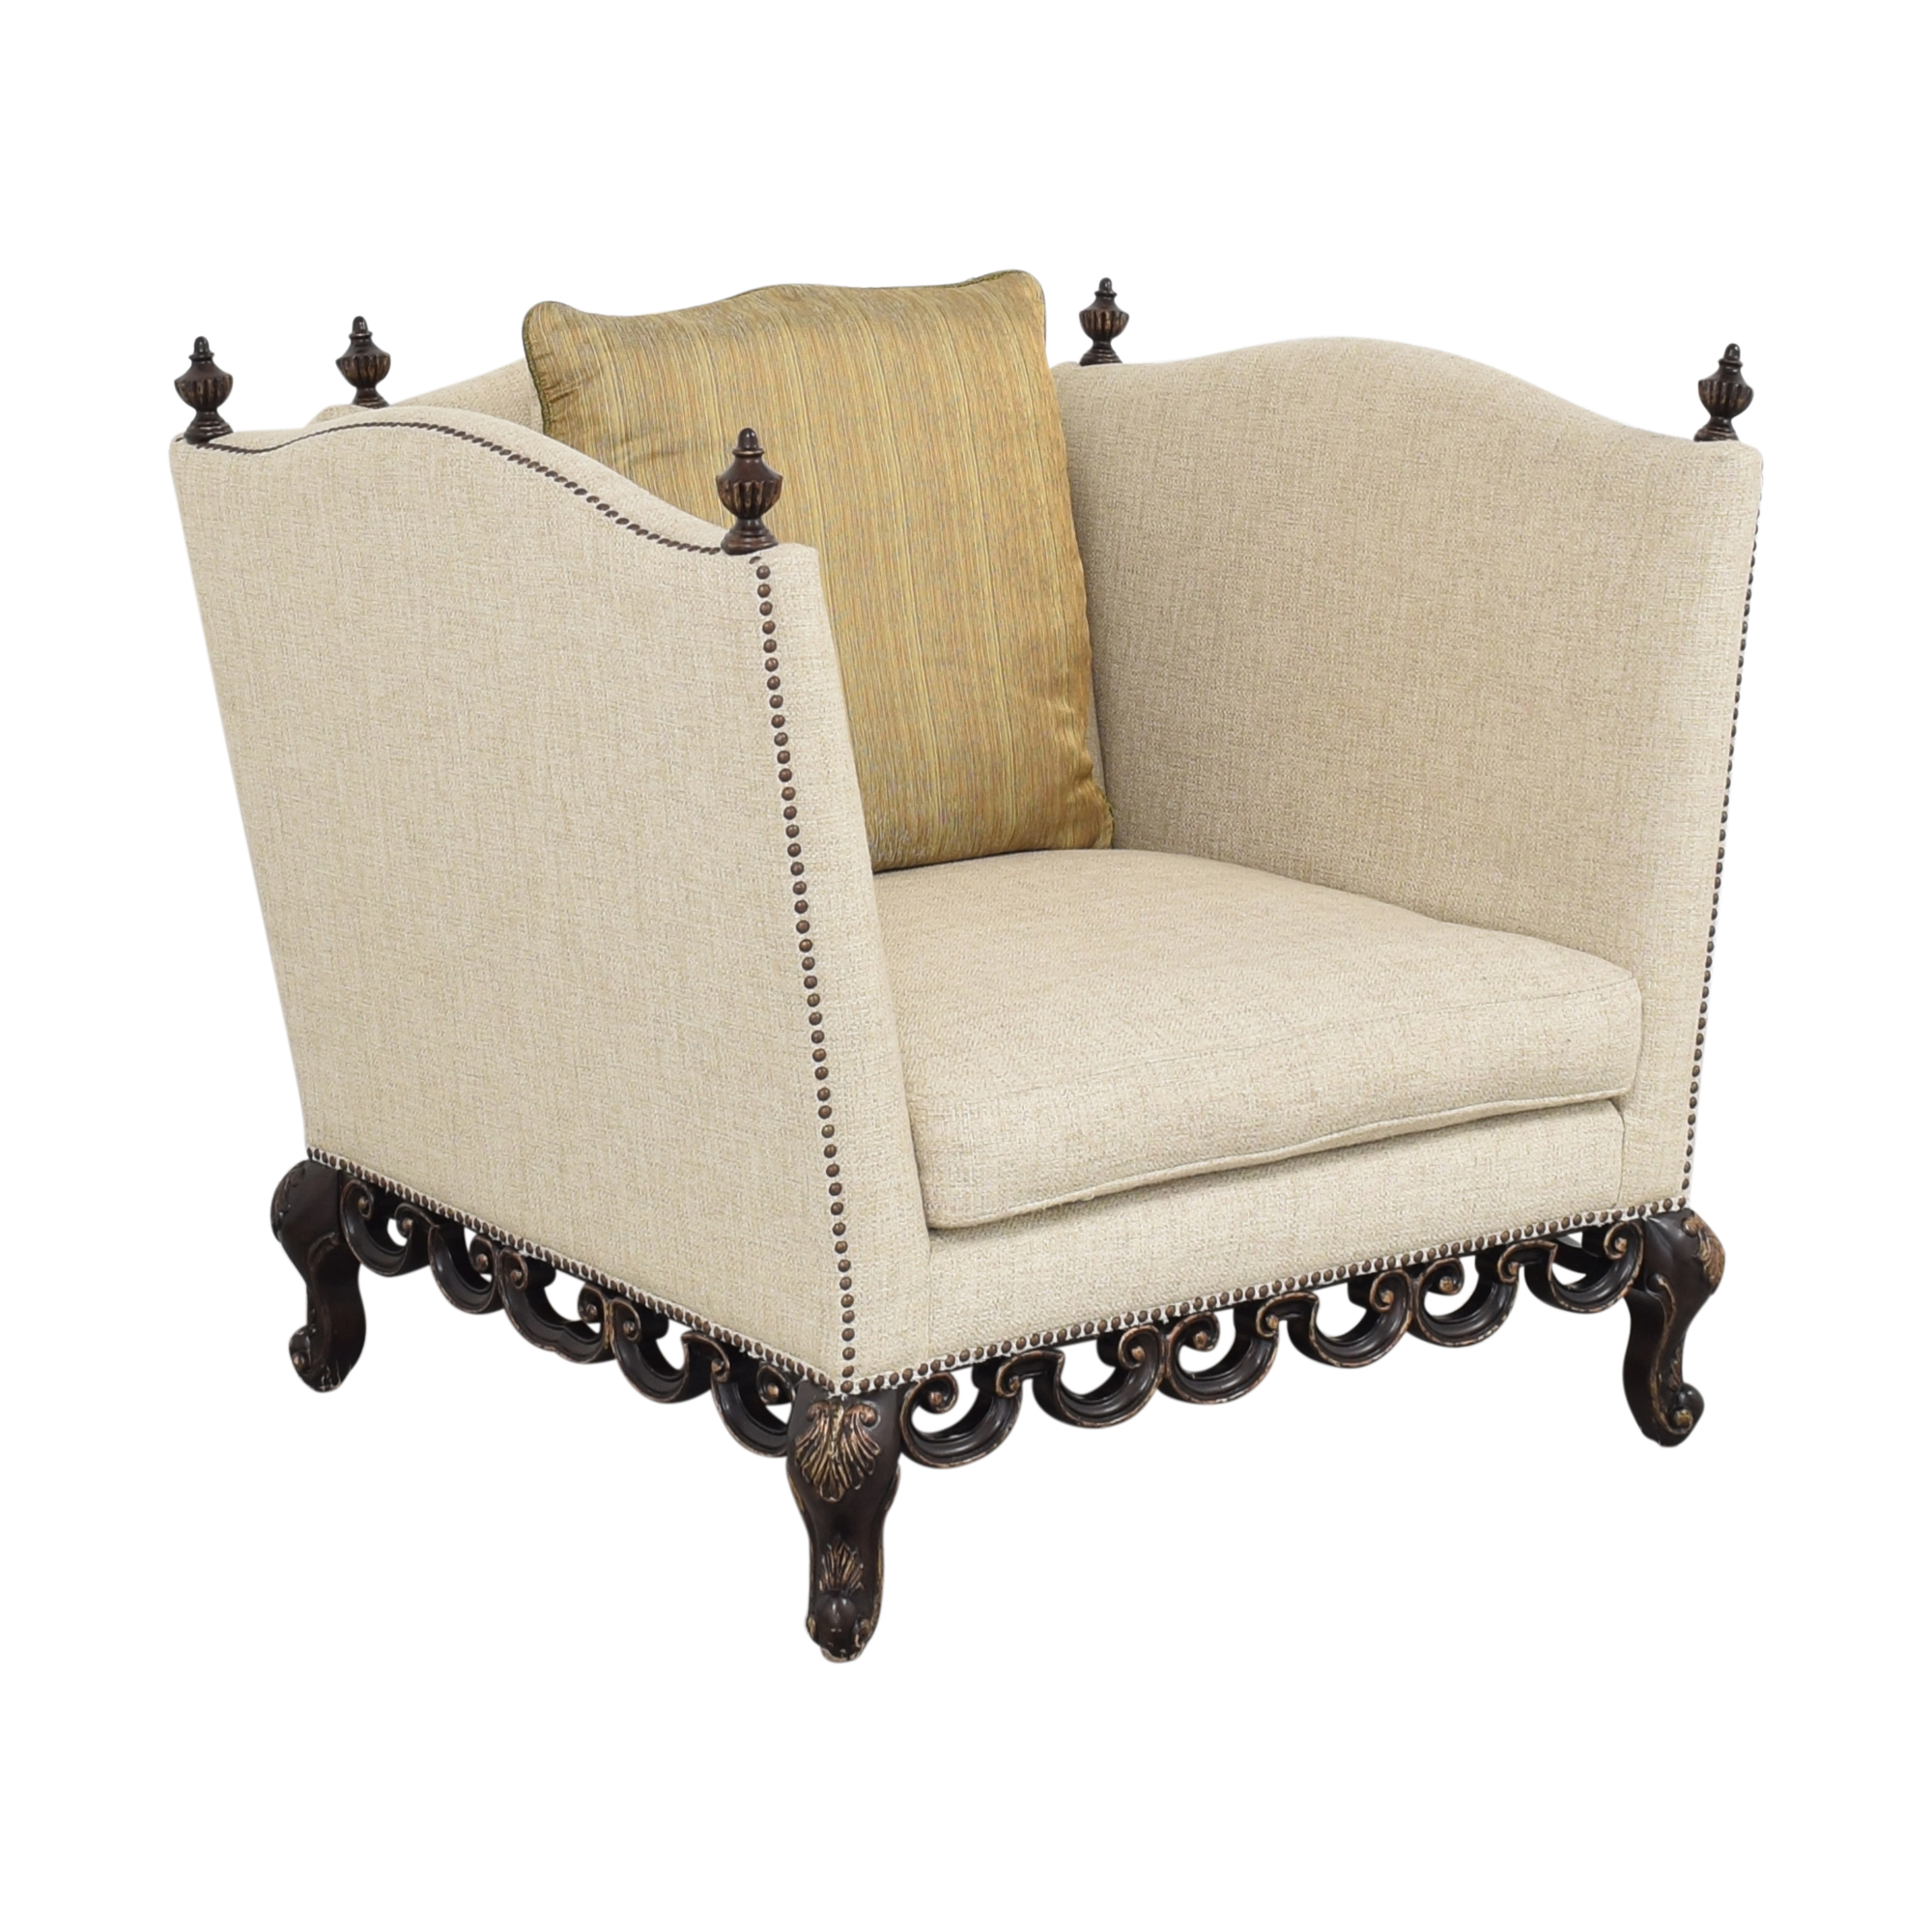 Markor International Markor International Accent Chair second hand